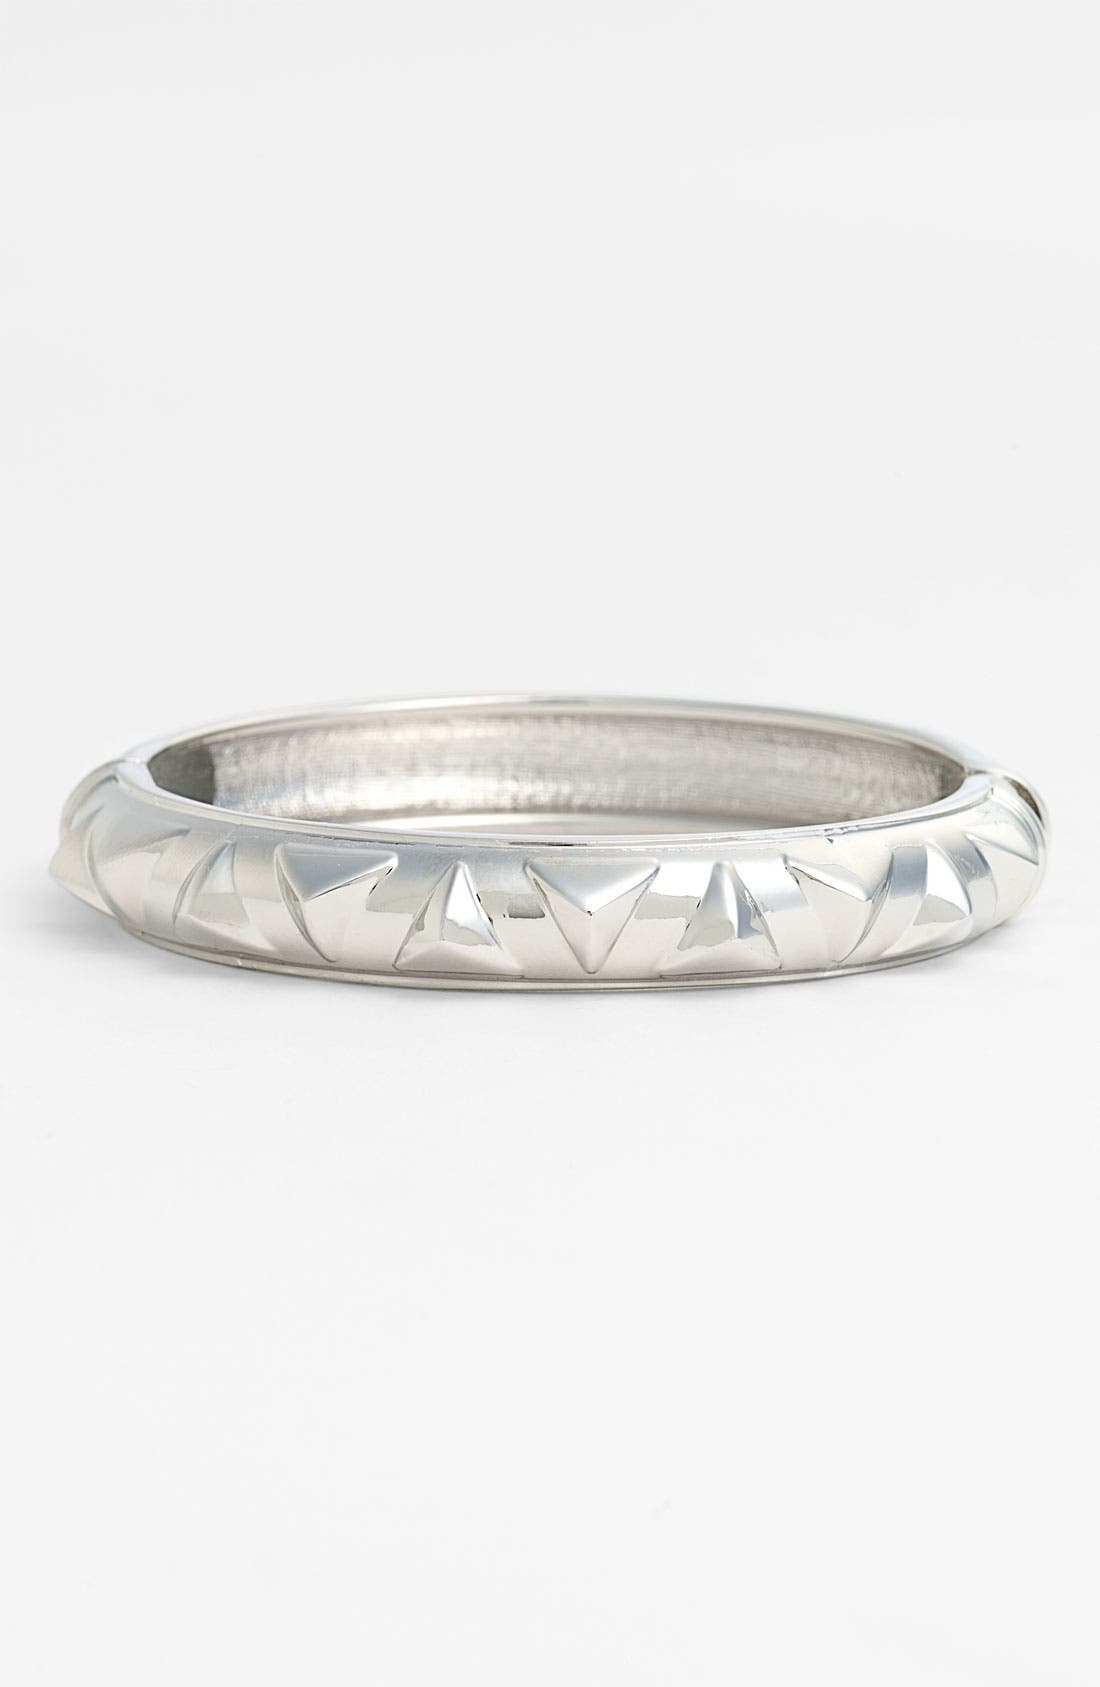 Main Image - Sequin Metal Pyramid Hinged Bangle